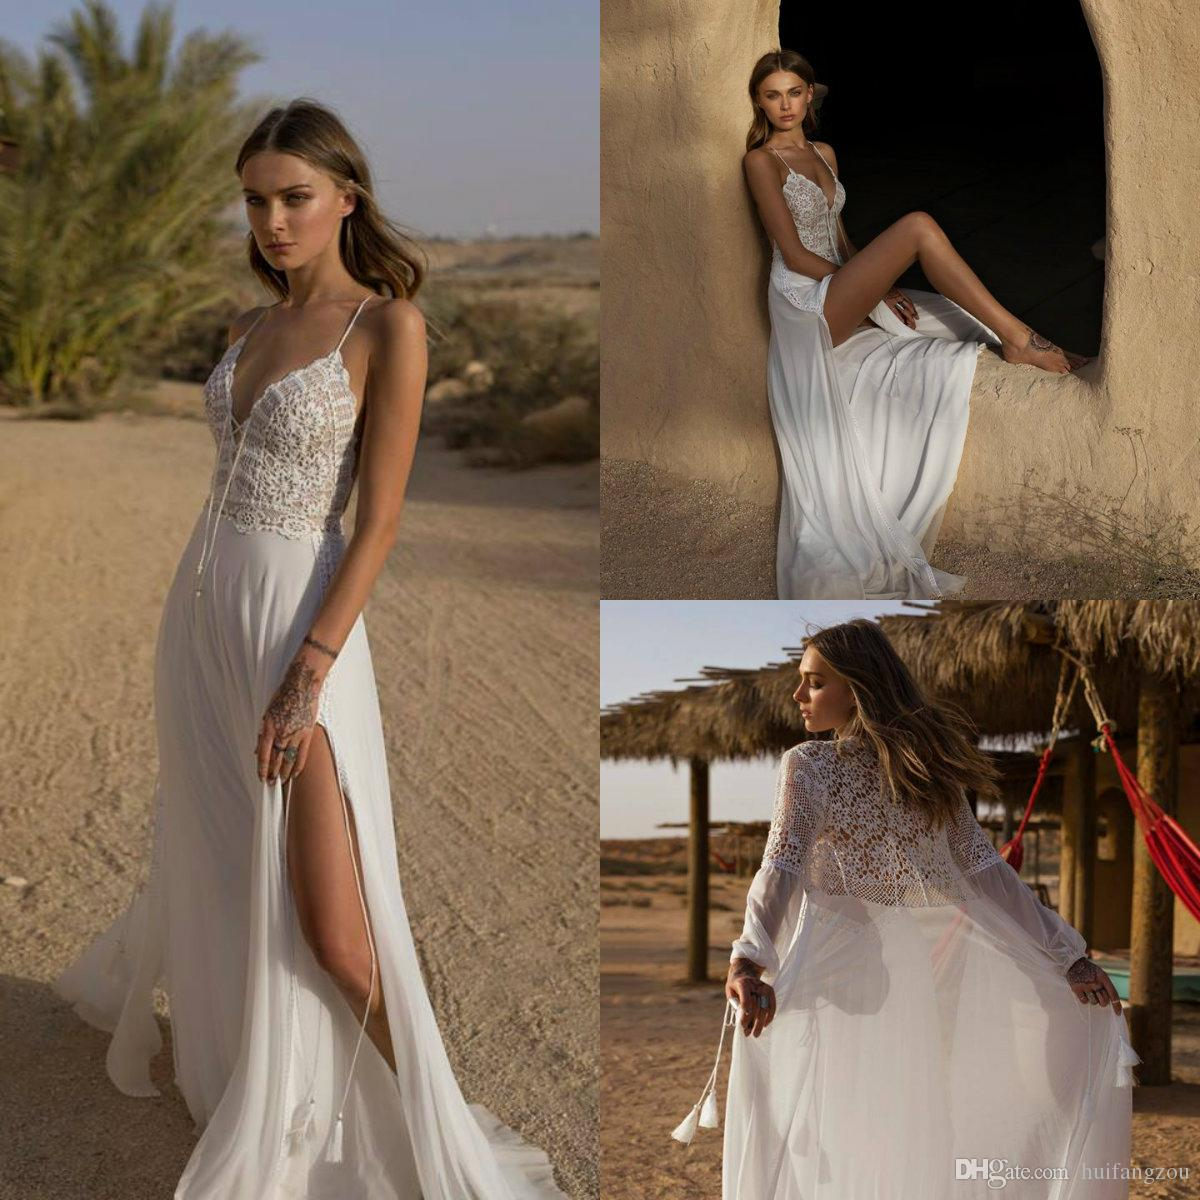 7863a3c52526a Custom Made Summer Boho Wedding Dresses 2019 Asaf Dadush Spaghetti Lace  Thigh High Slits Bridal Gowns with Wrap Chiffon Beach Wedding Dress